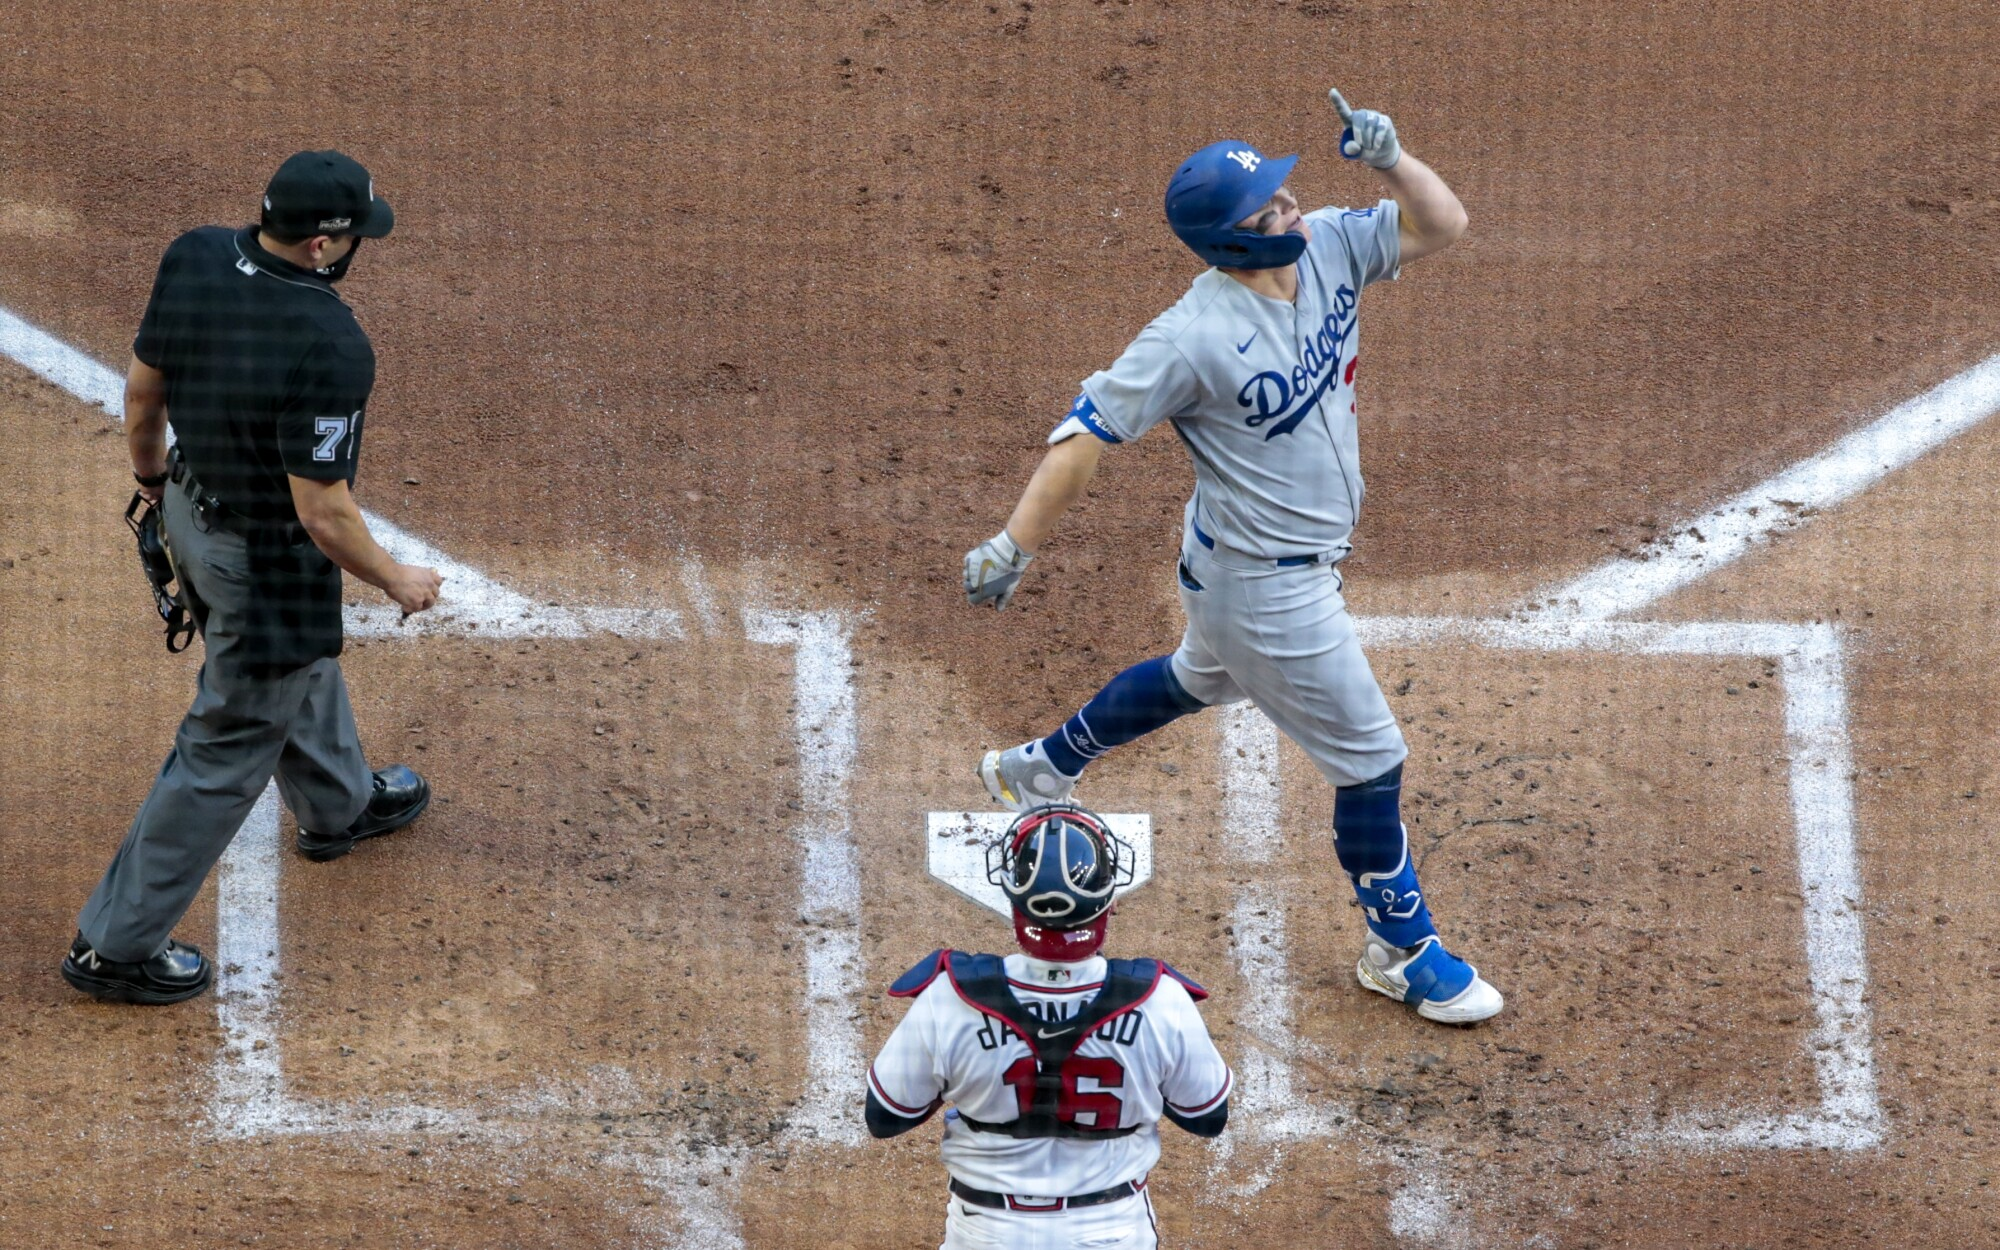 Dodgers left fielder Joc Pederson celebrates as he crosses the plate after hitting a three-run home run in the first inning.